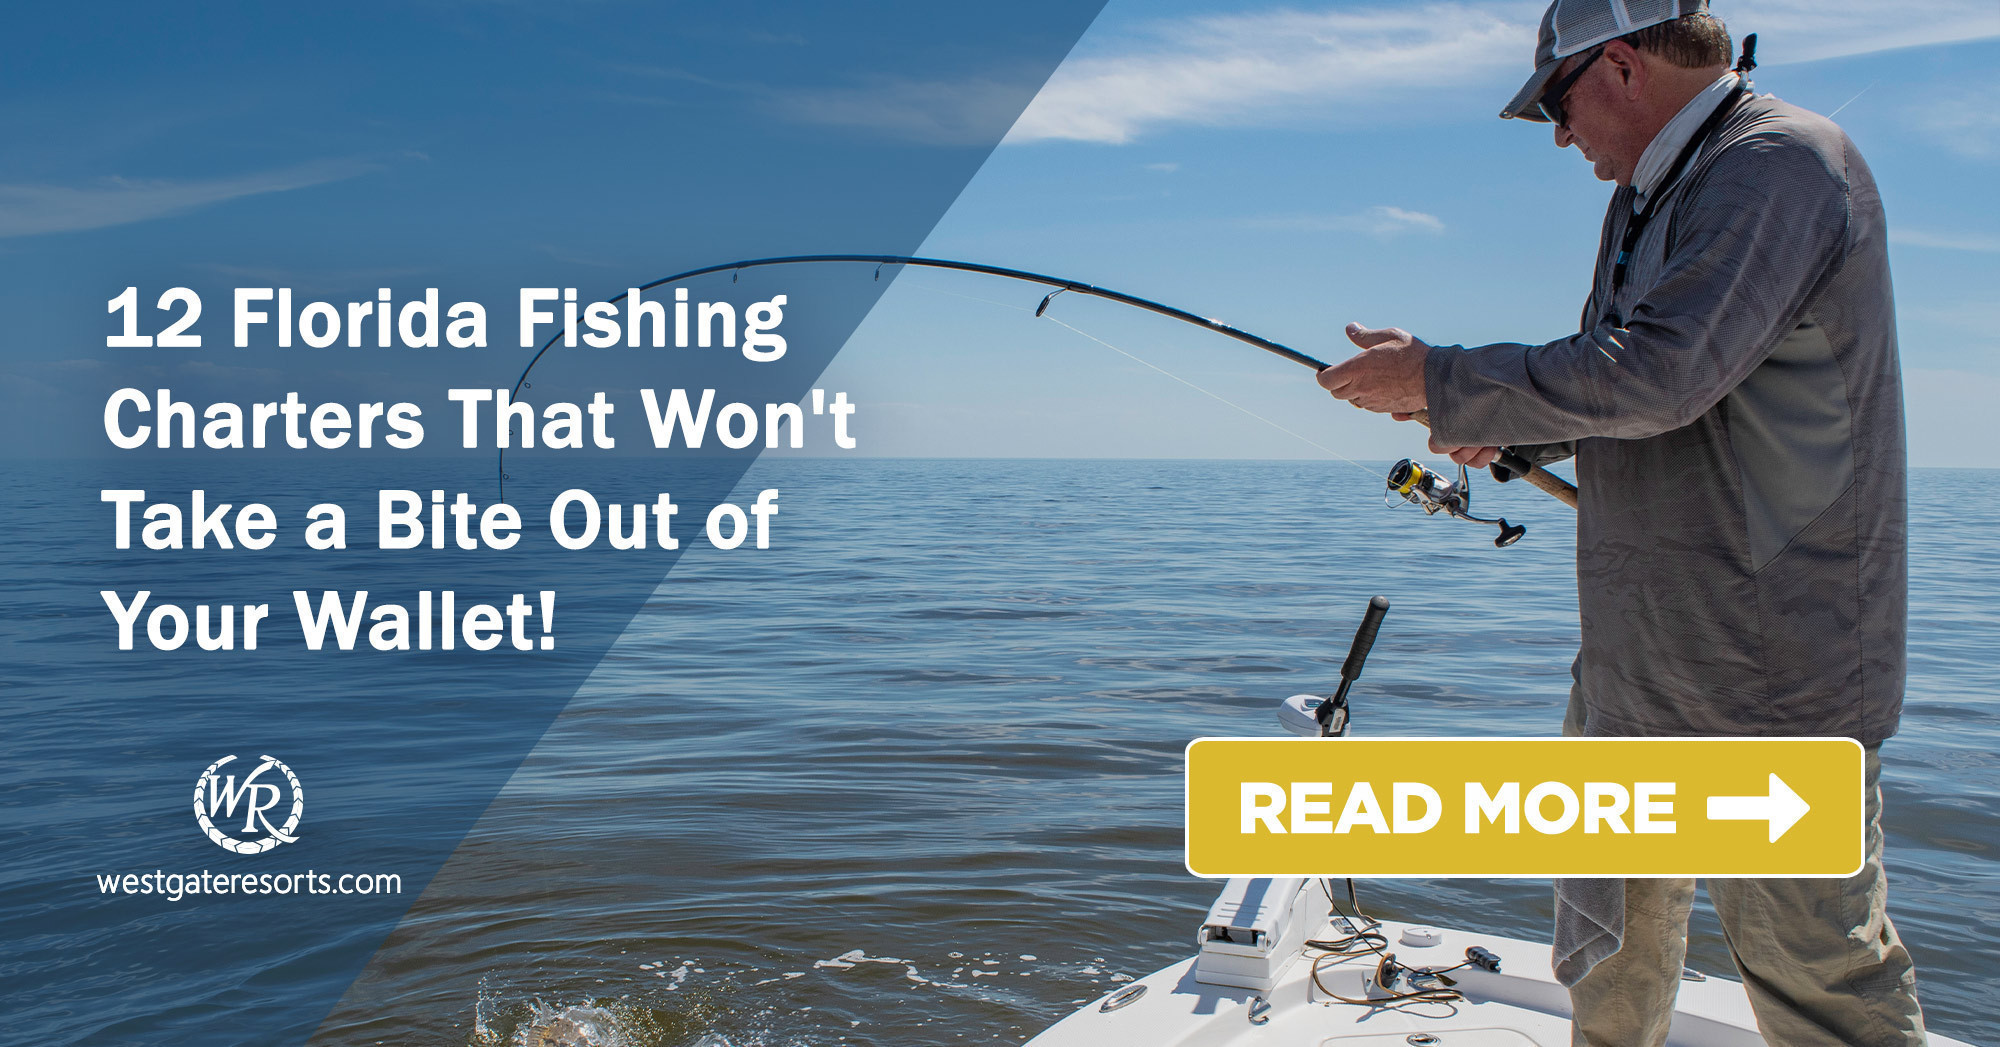 12 Florida Fishing Charters That Won't Take a Bite Out of Your Wallet!